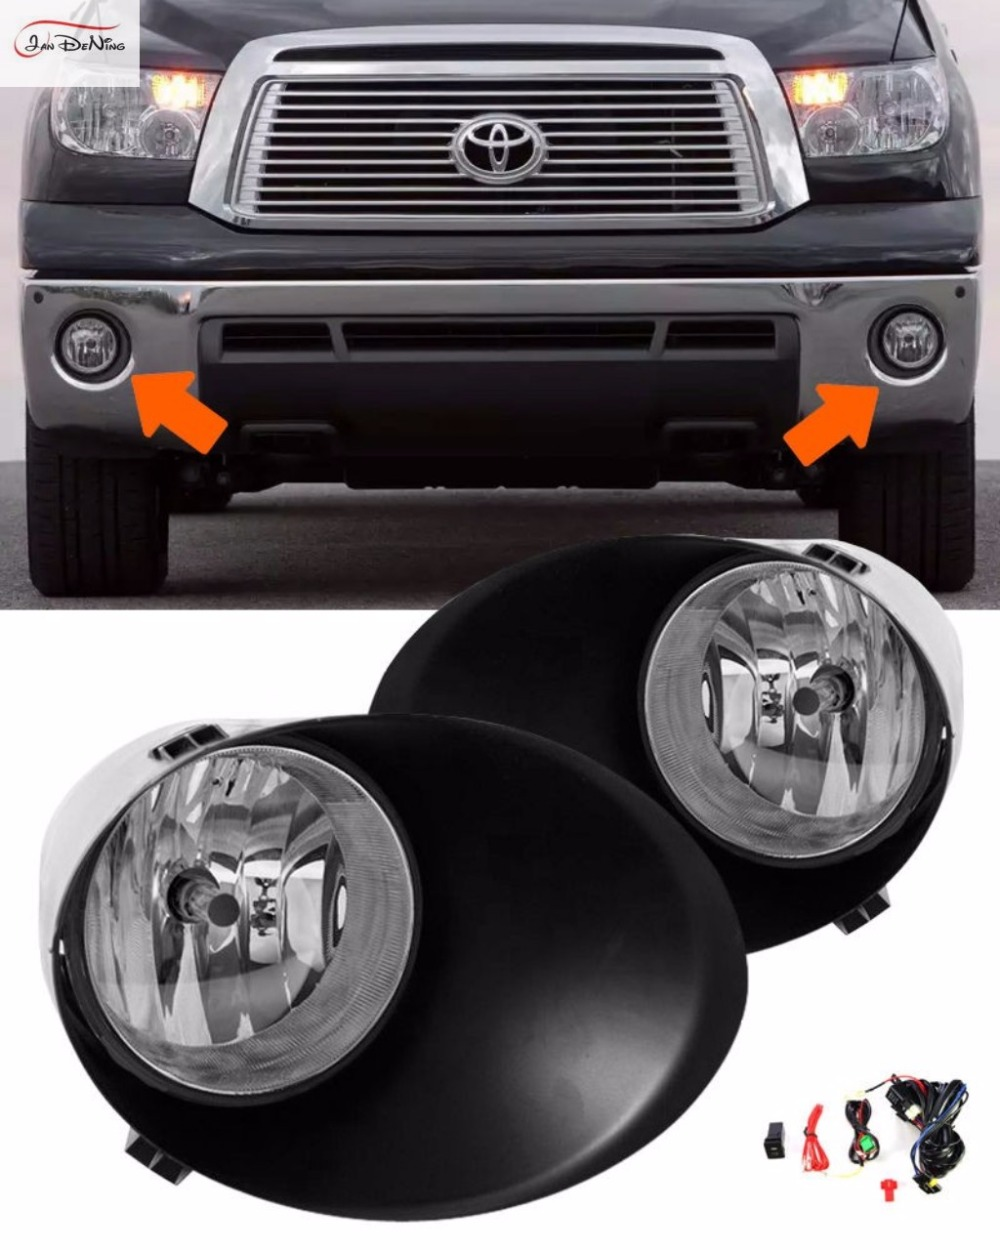 JanDeNing Car Fog Lights For 2007-2011 Toyota TundraOEM Clear Front Fog Lights Bumper Lamps Kit (one Pair) free shipping fog light set fog lights lamp for toyota vios 2013 on clear lens pair set wiring kit